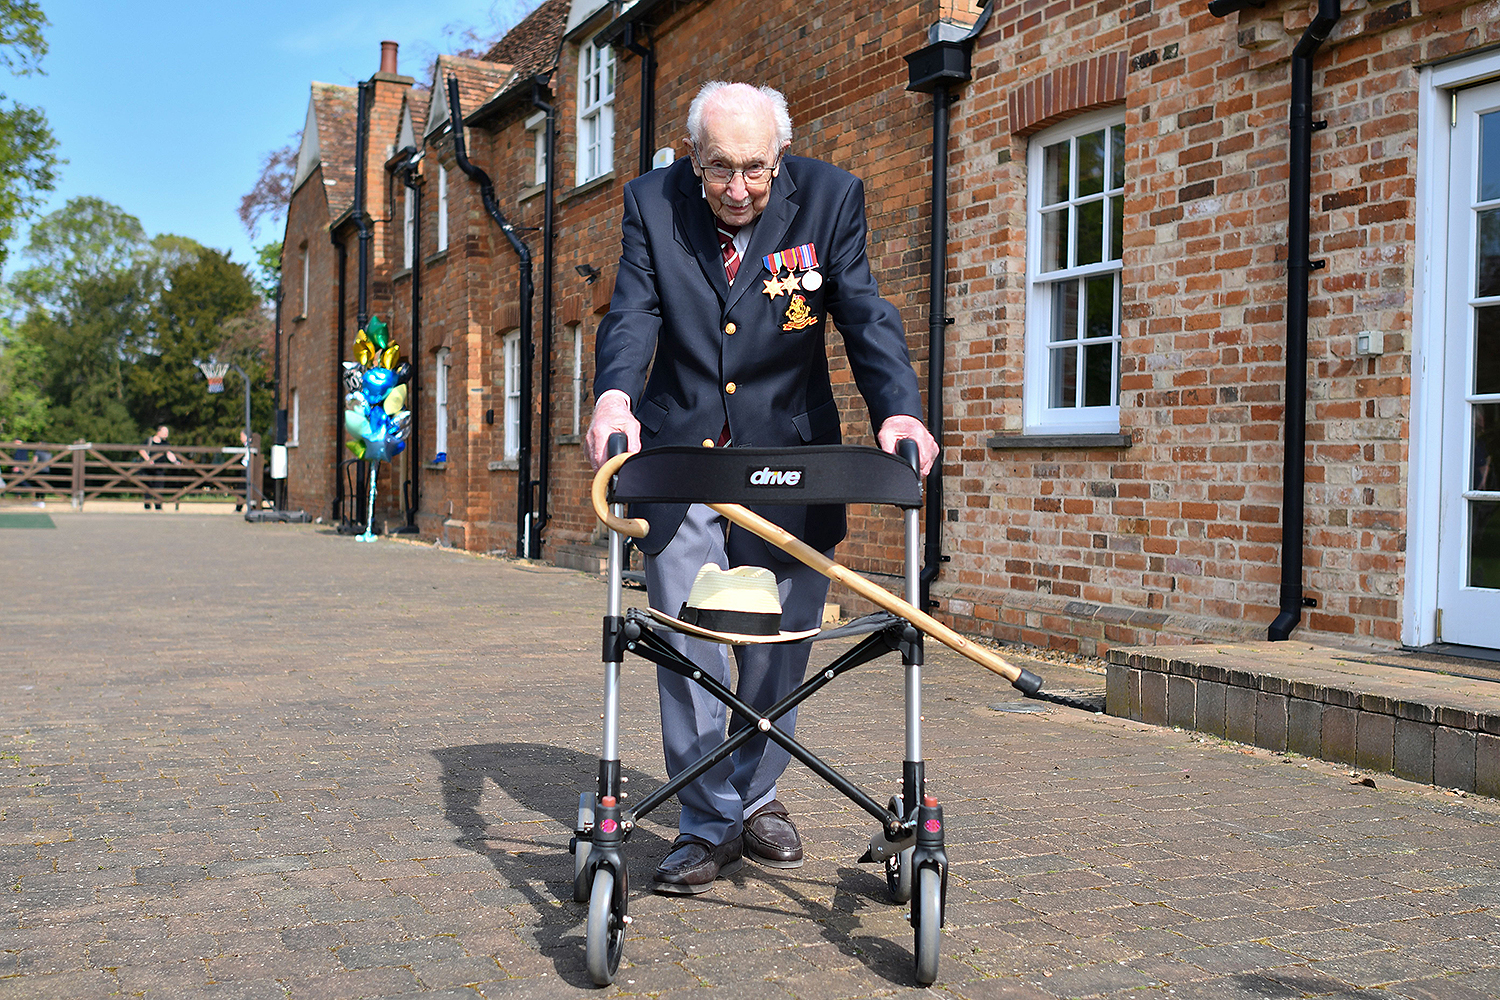 The hero of 2020. British World War II veteran Capt. Tom Moore, 99, walks a lap of his garden in the village of Marston Moretaine, north of London, on April 16. Moore walked 100 laps to raise money for the U.K.'s National Health Service. JUSTIN TALLIS/AFP via Getty Images